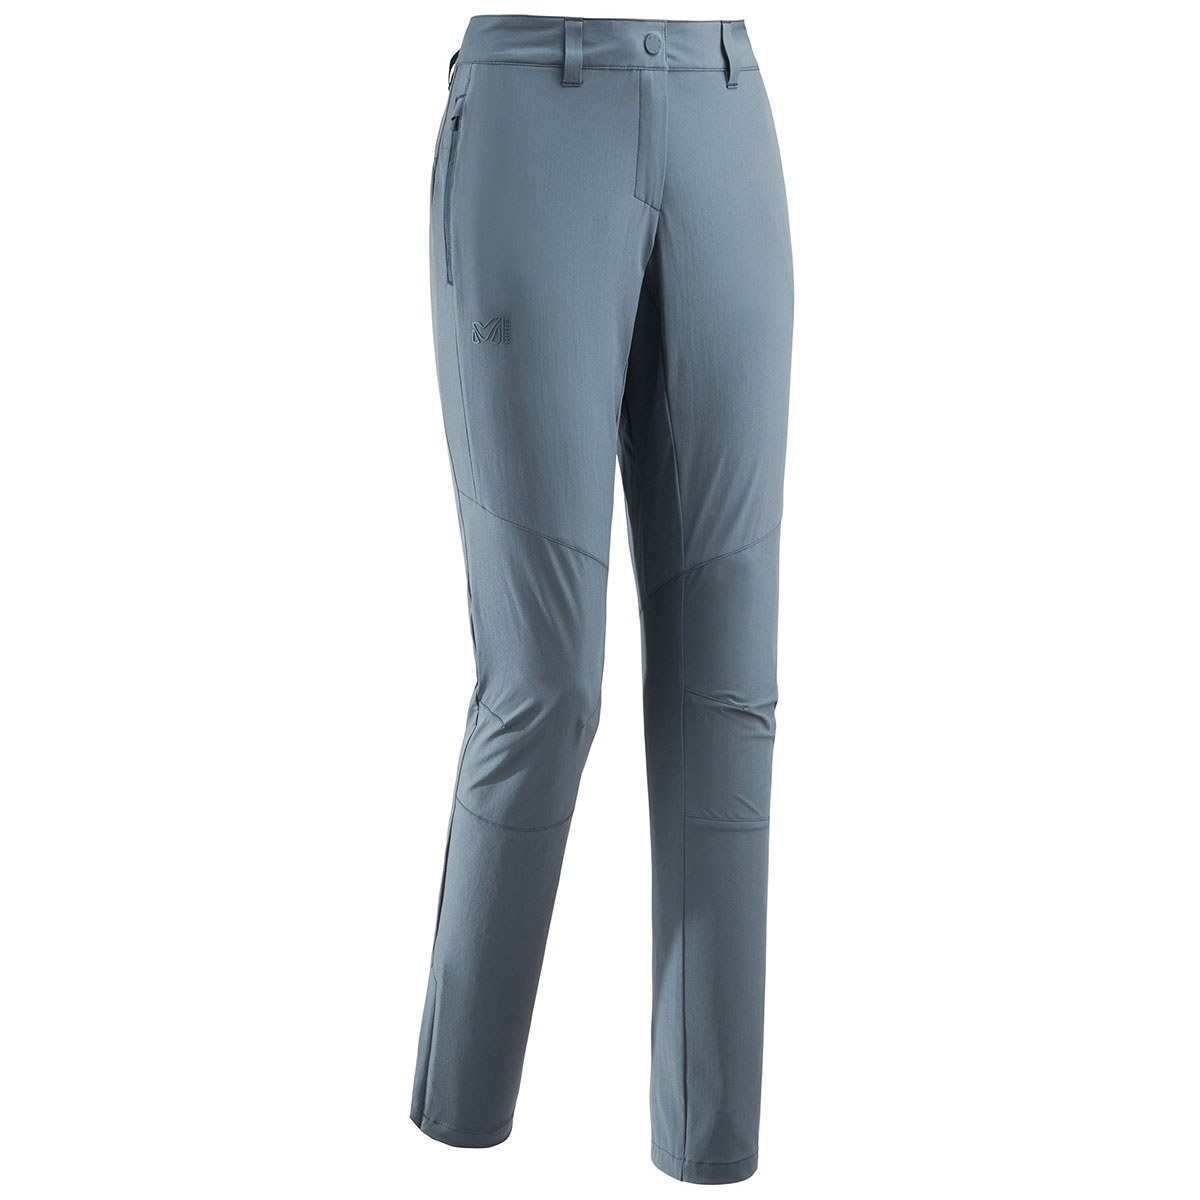 Trekking pants LD Onega Stretch Pant by Millet designed for the casual mountaineer and built for hiking and active trekking.